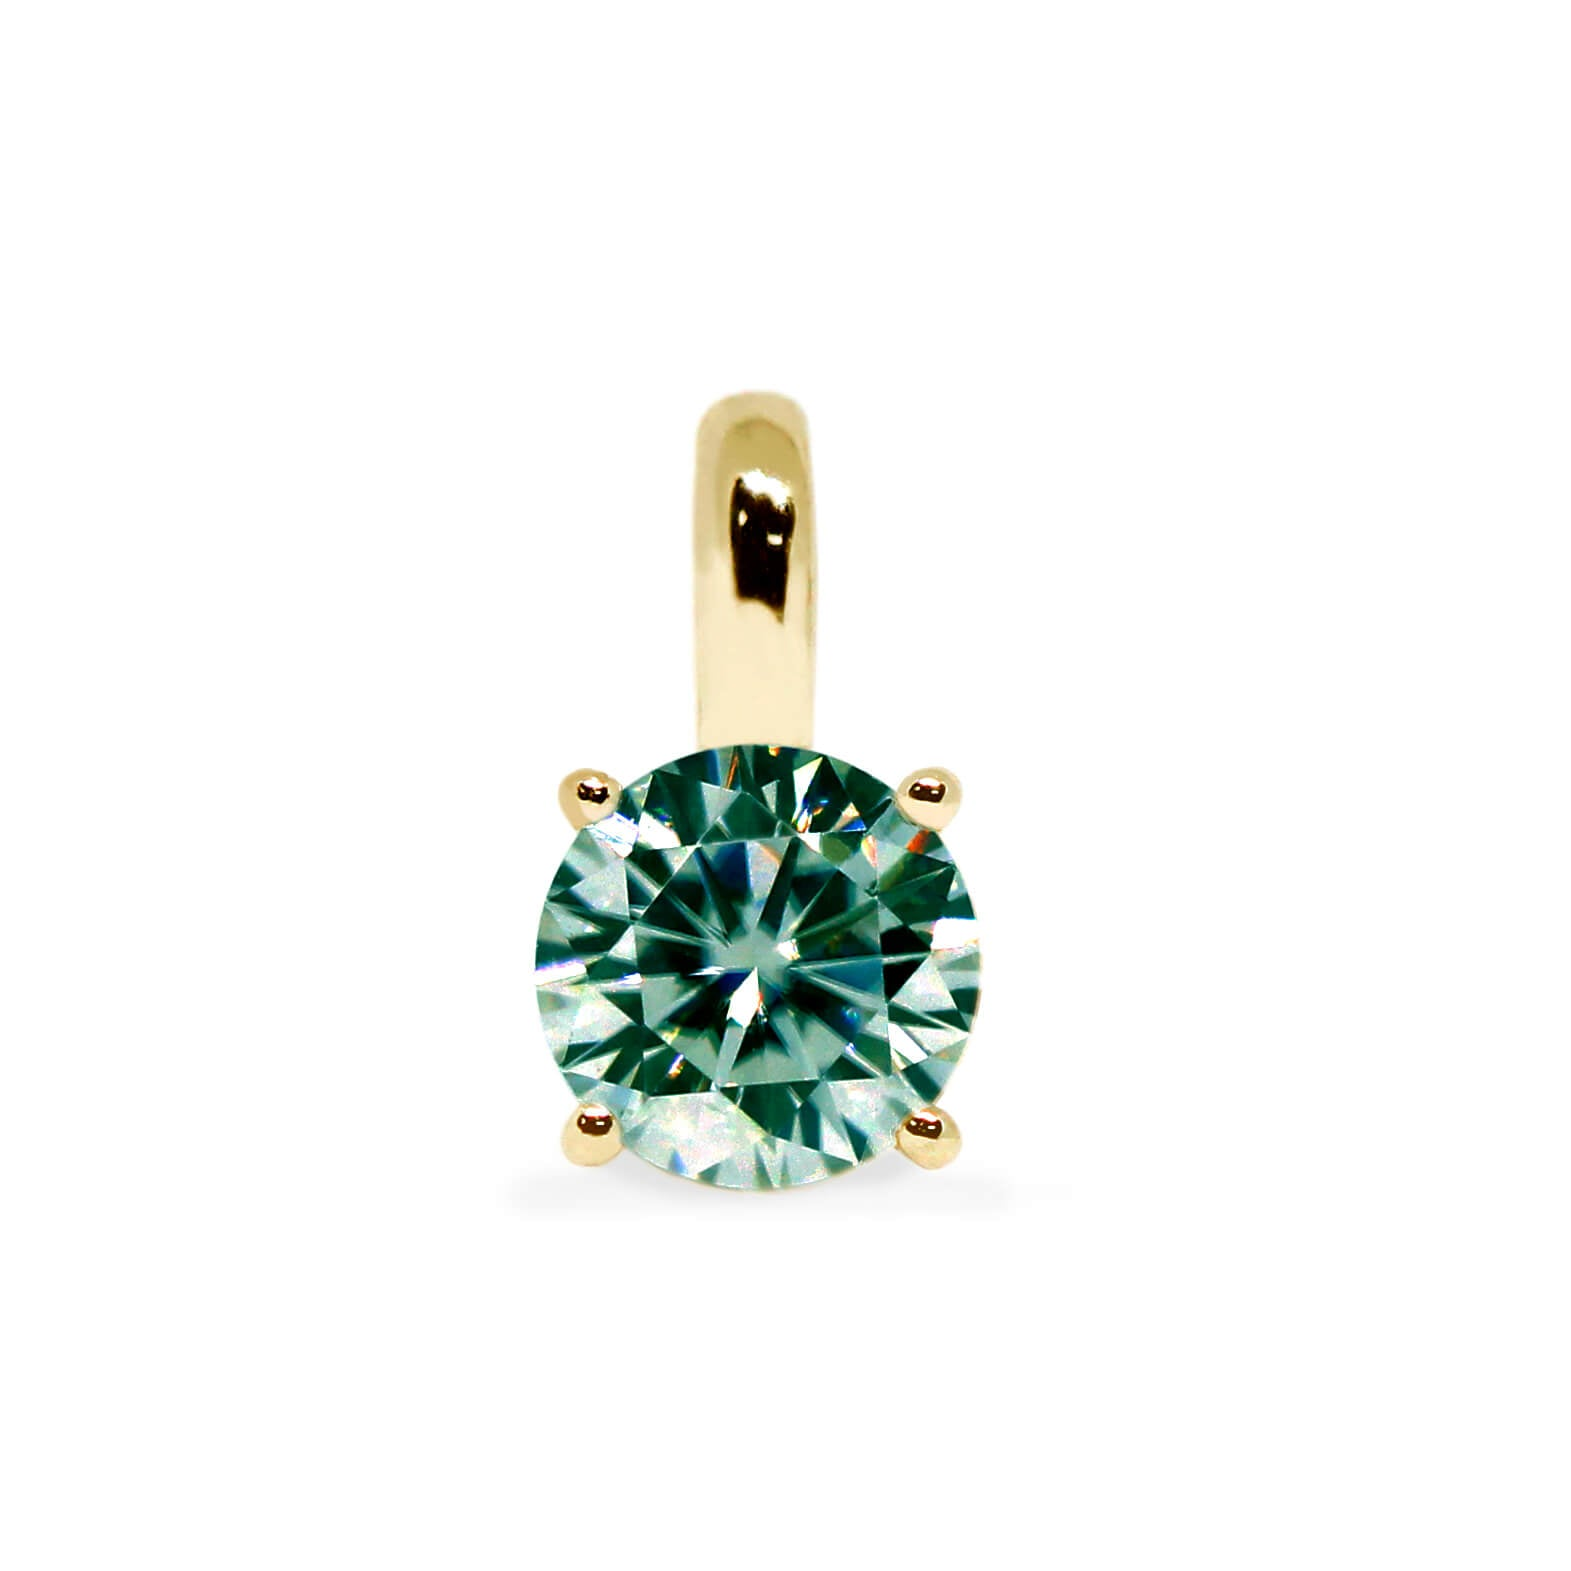 Medium Green Moissanite Round Solitaire 18K Gold Pendant